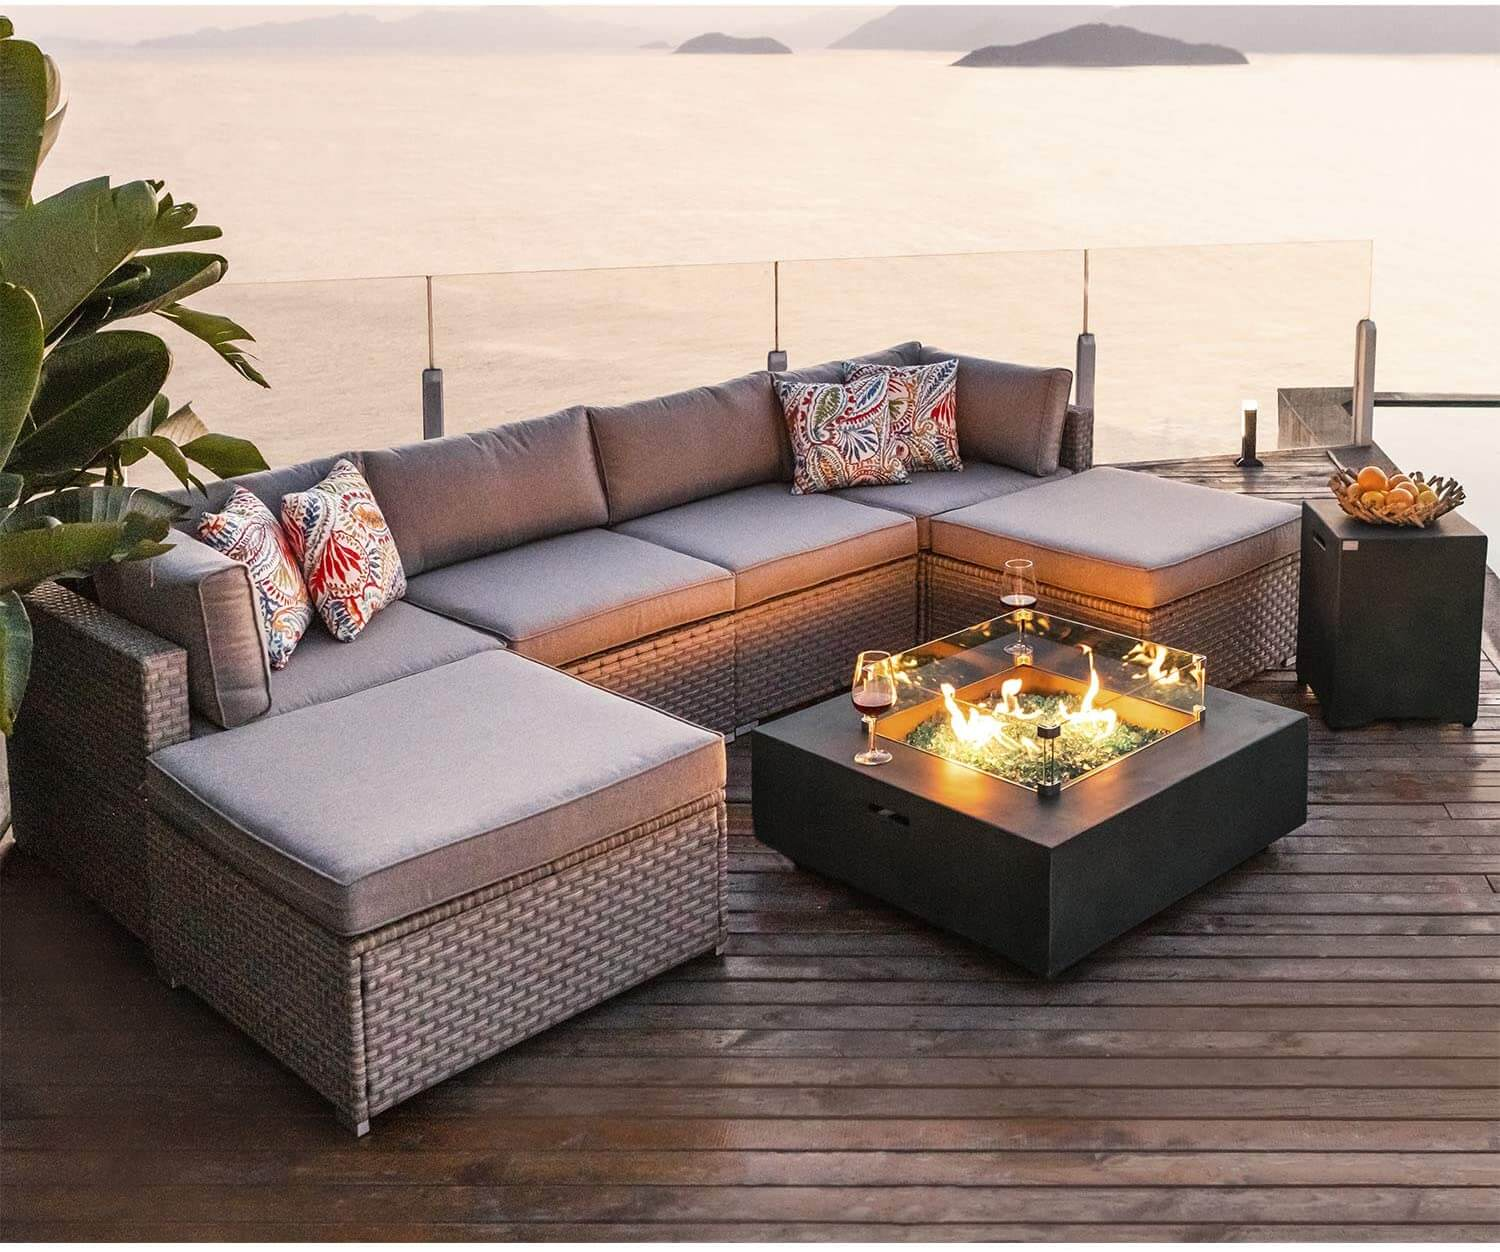 Awesome Cosiest 8 Piece Patio Set with Fire Pit